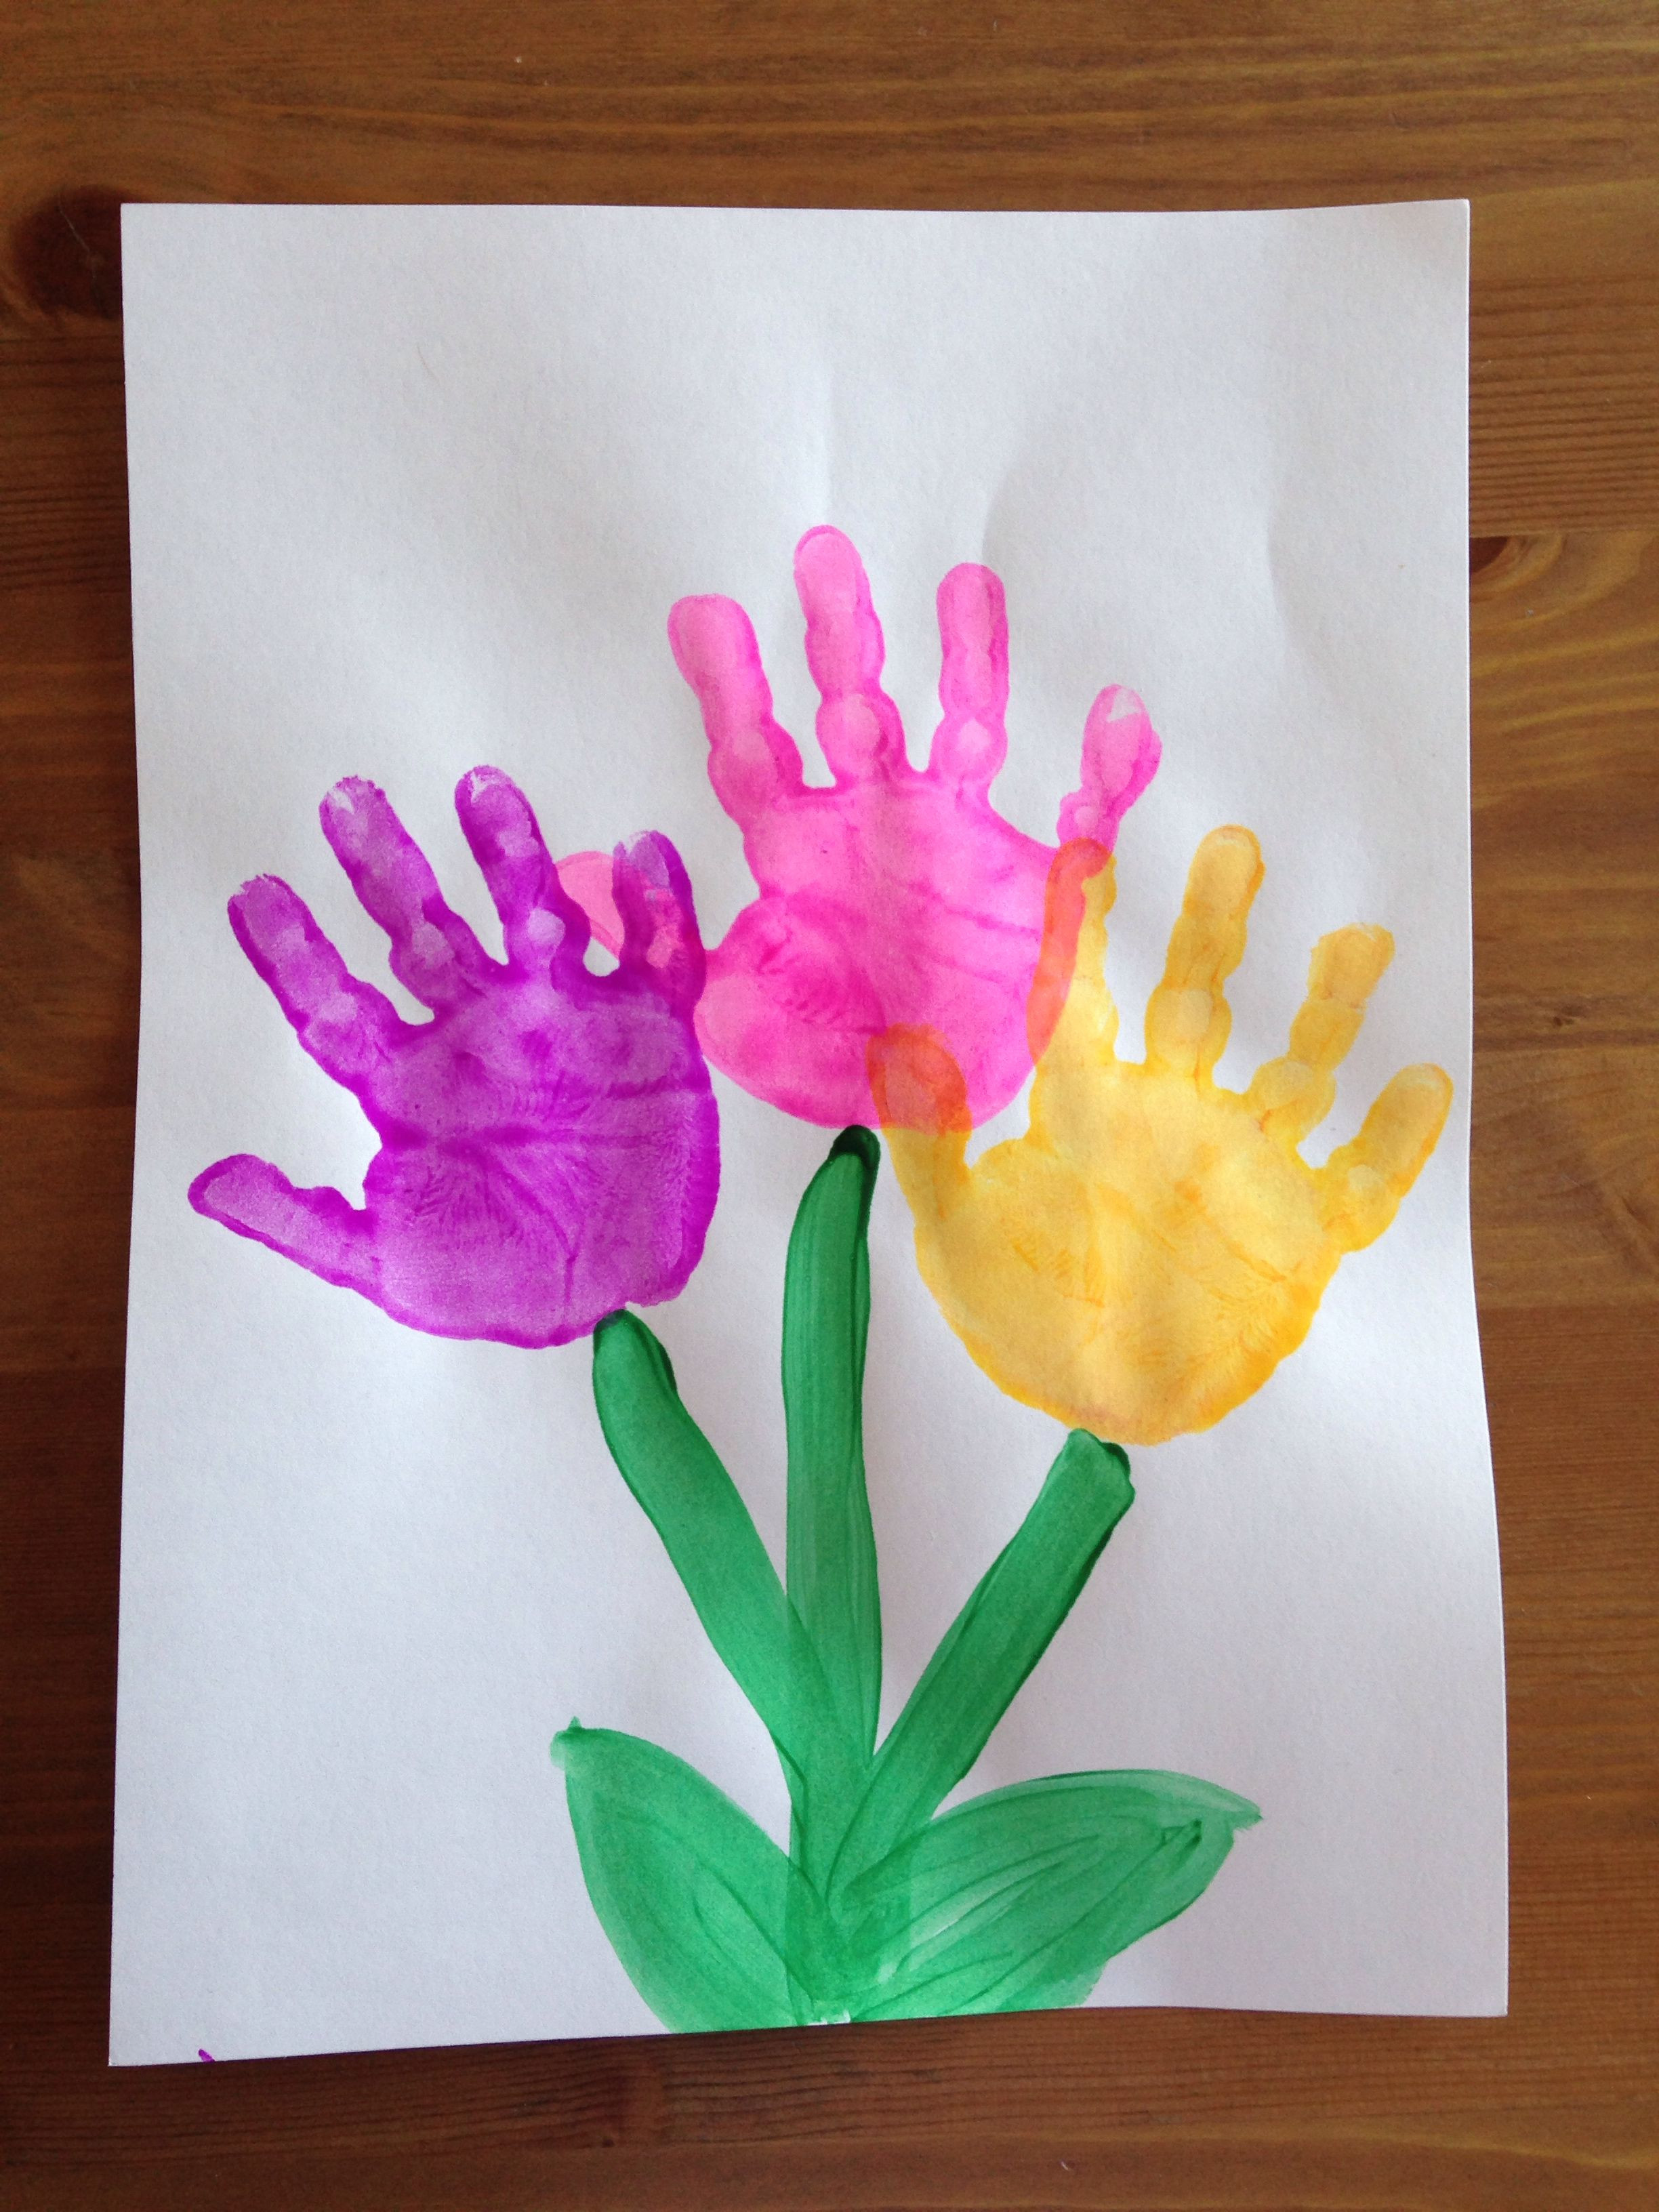 Best ideas about Spring Craft Ideas For Toddlers . Save or Pin Handprint Flower Craft Spring Craft Preschool Craft Now.